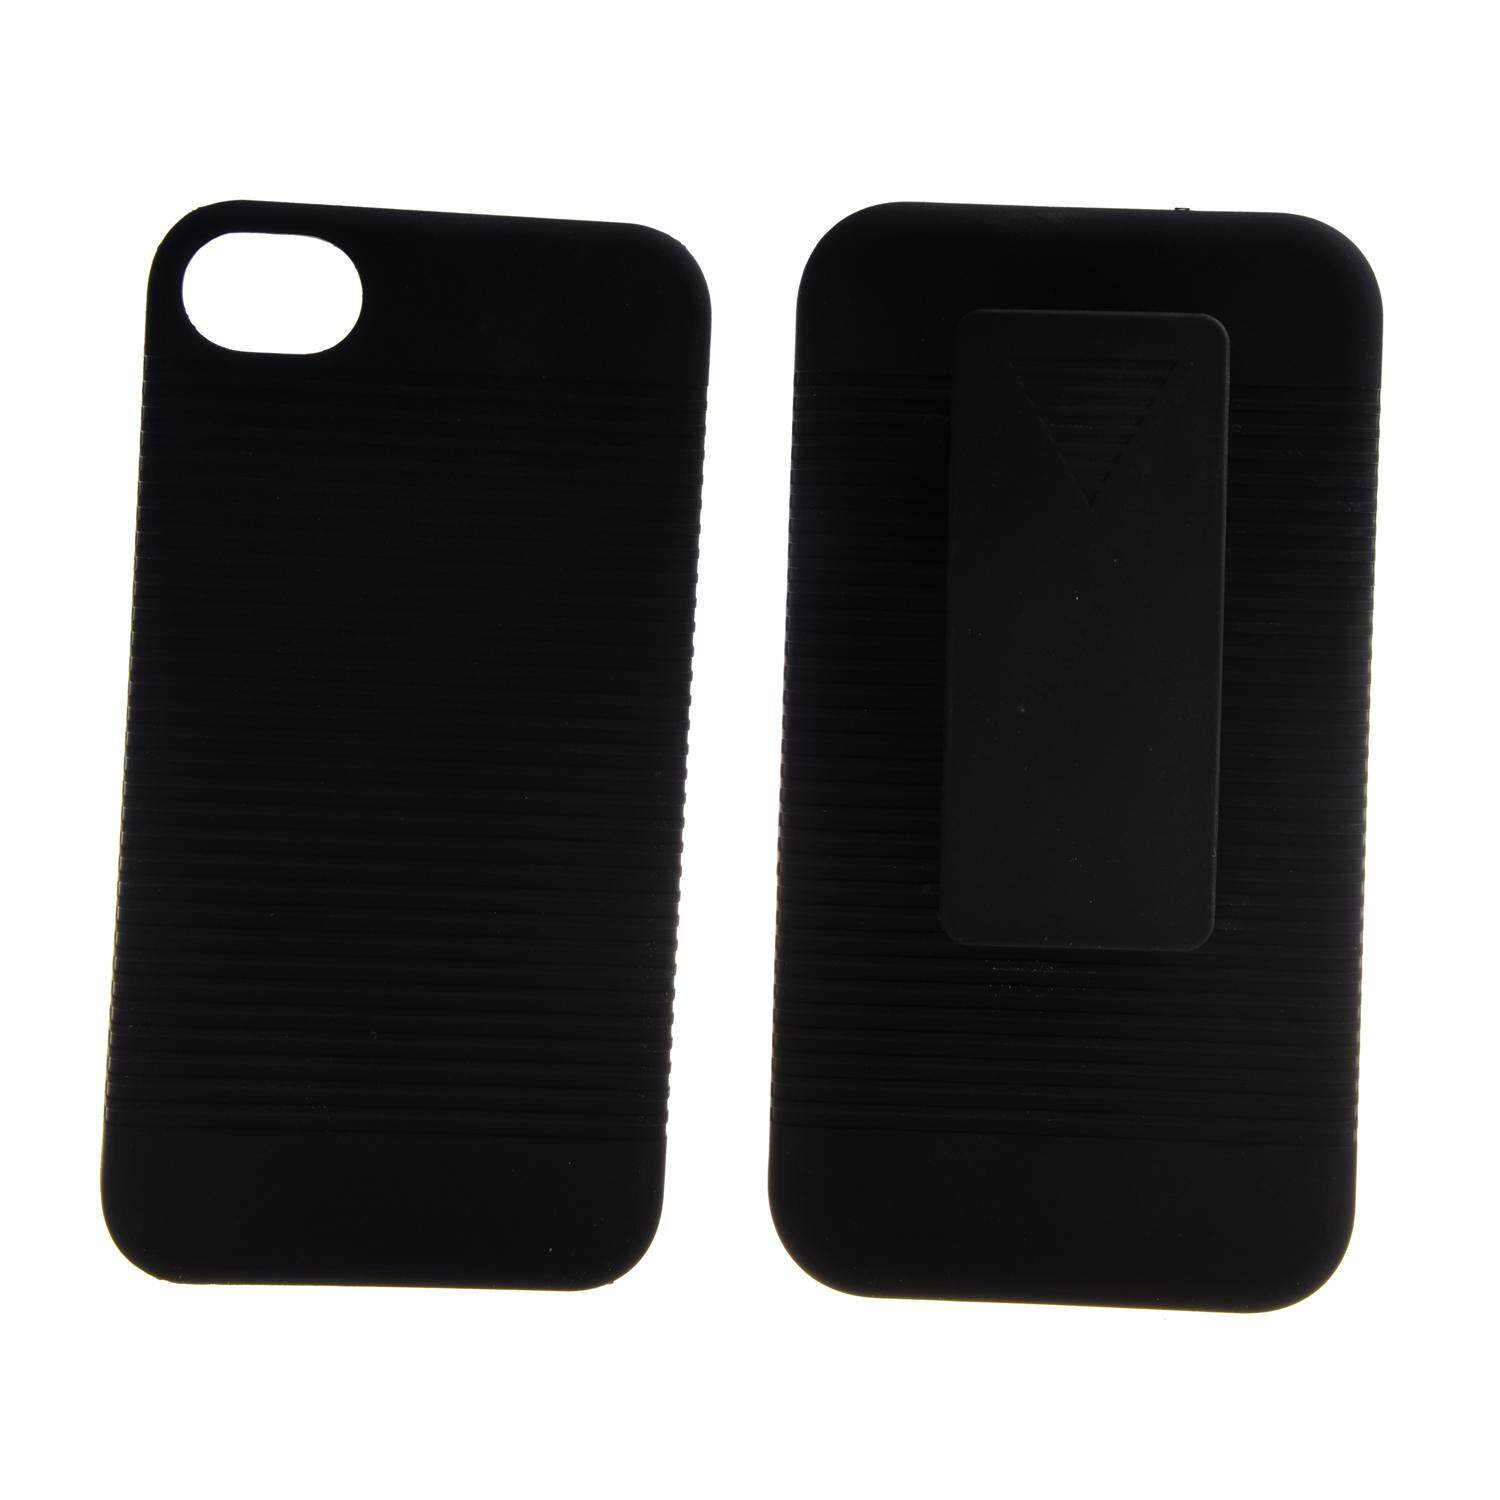 Pemium Black Holster Hard Case For Apple iPhone 4 4s With Locking Belt Swivel Clip